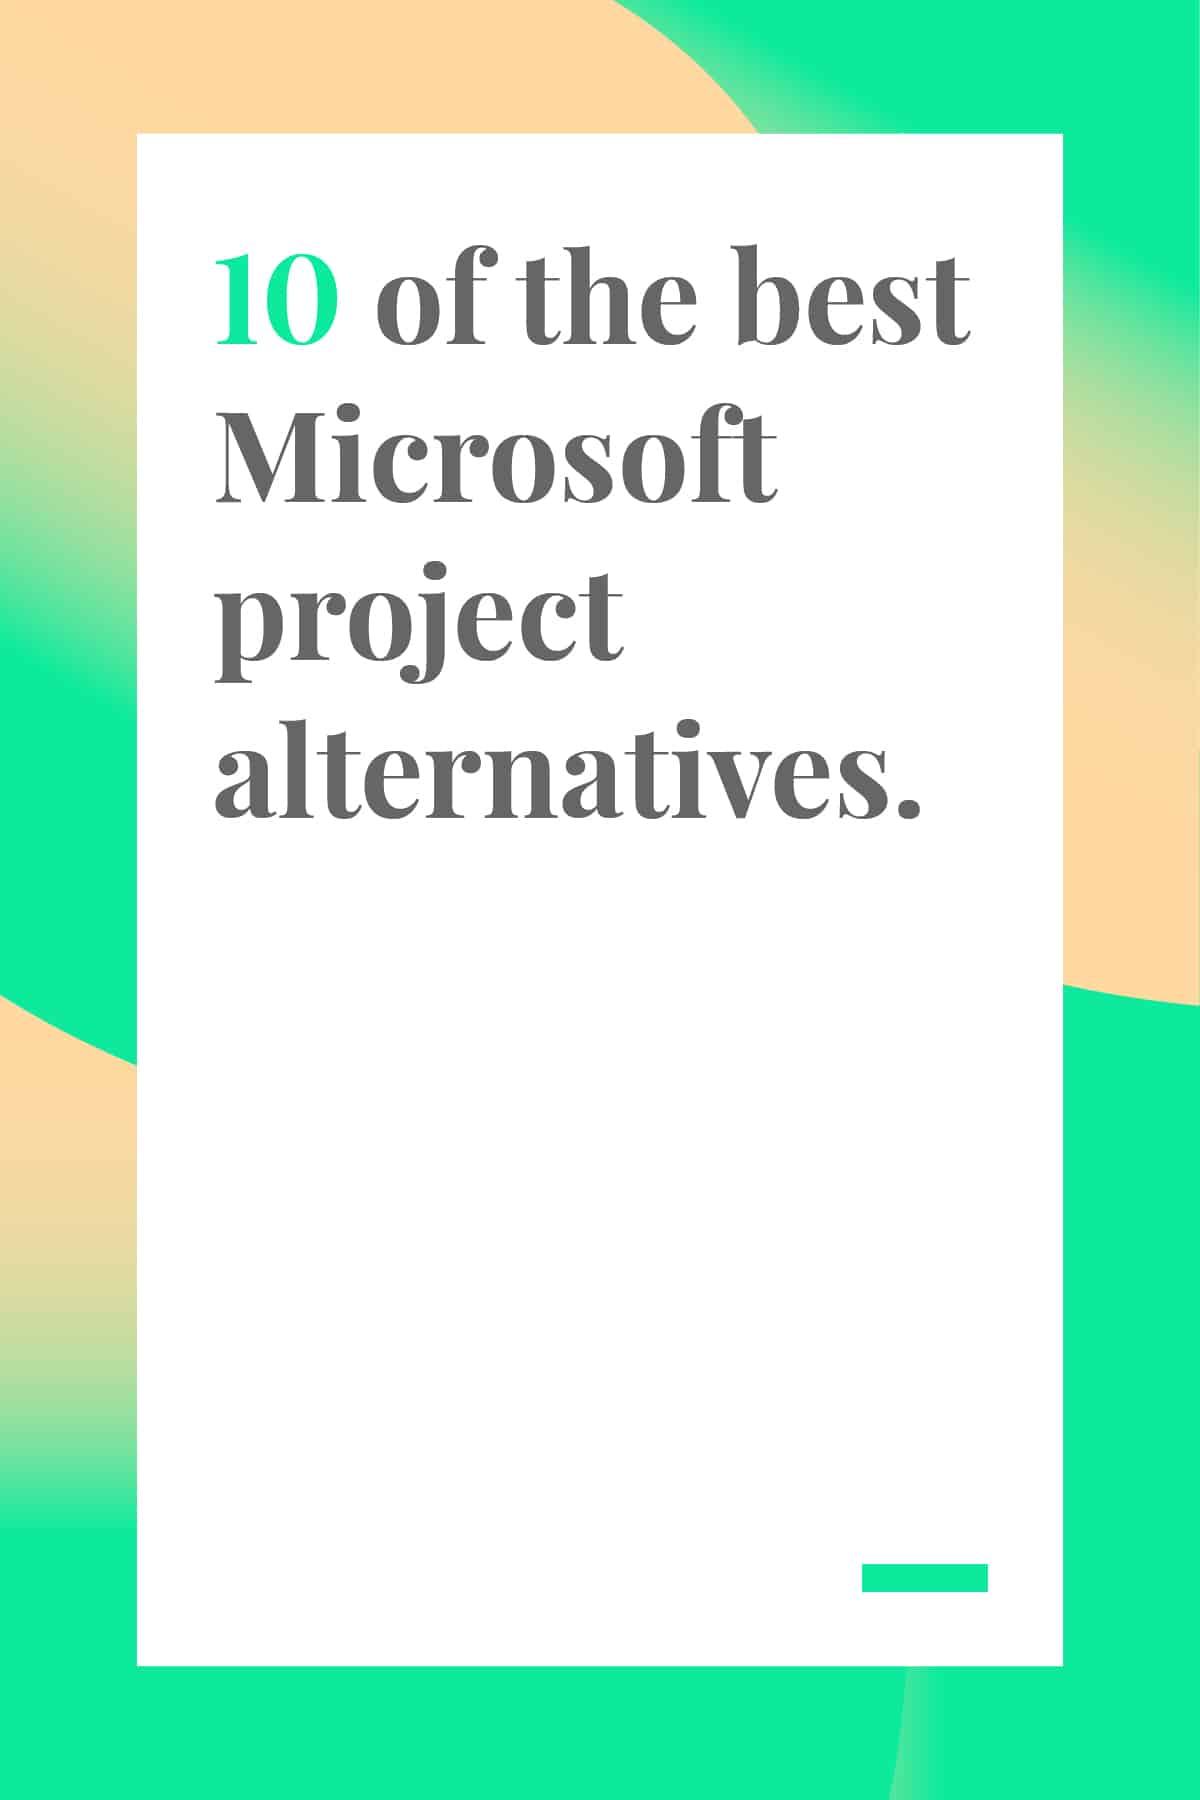 Looking for a Microsoft Project alternative that won't break the bank? Check out this round-up of affordable and effective project management tools. #projectmanagement #projectmanager